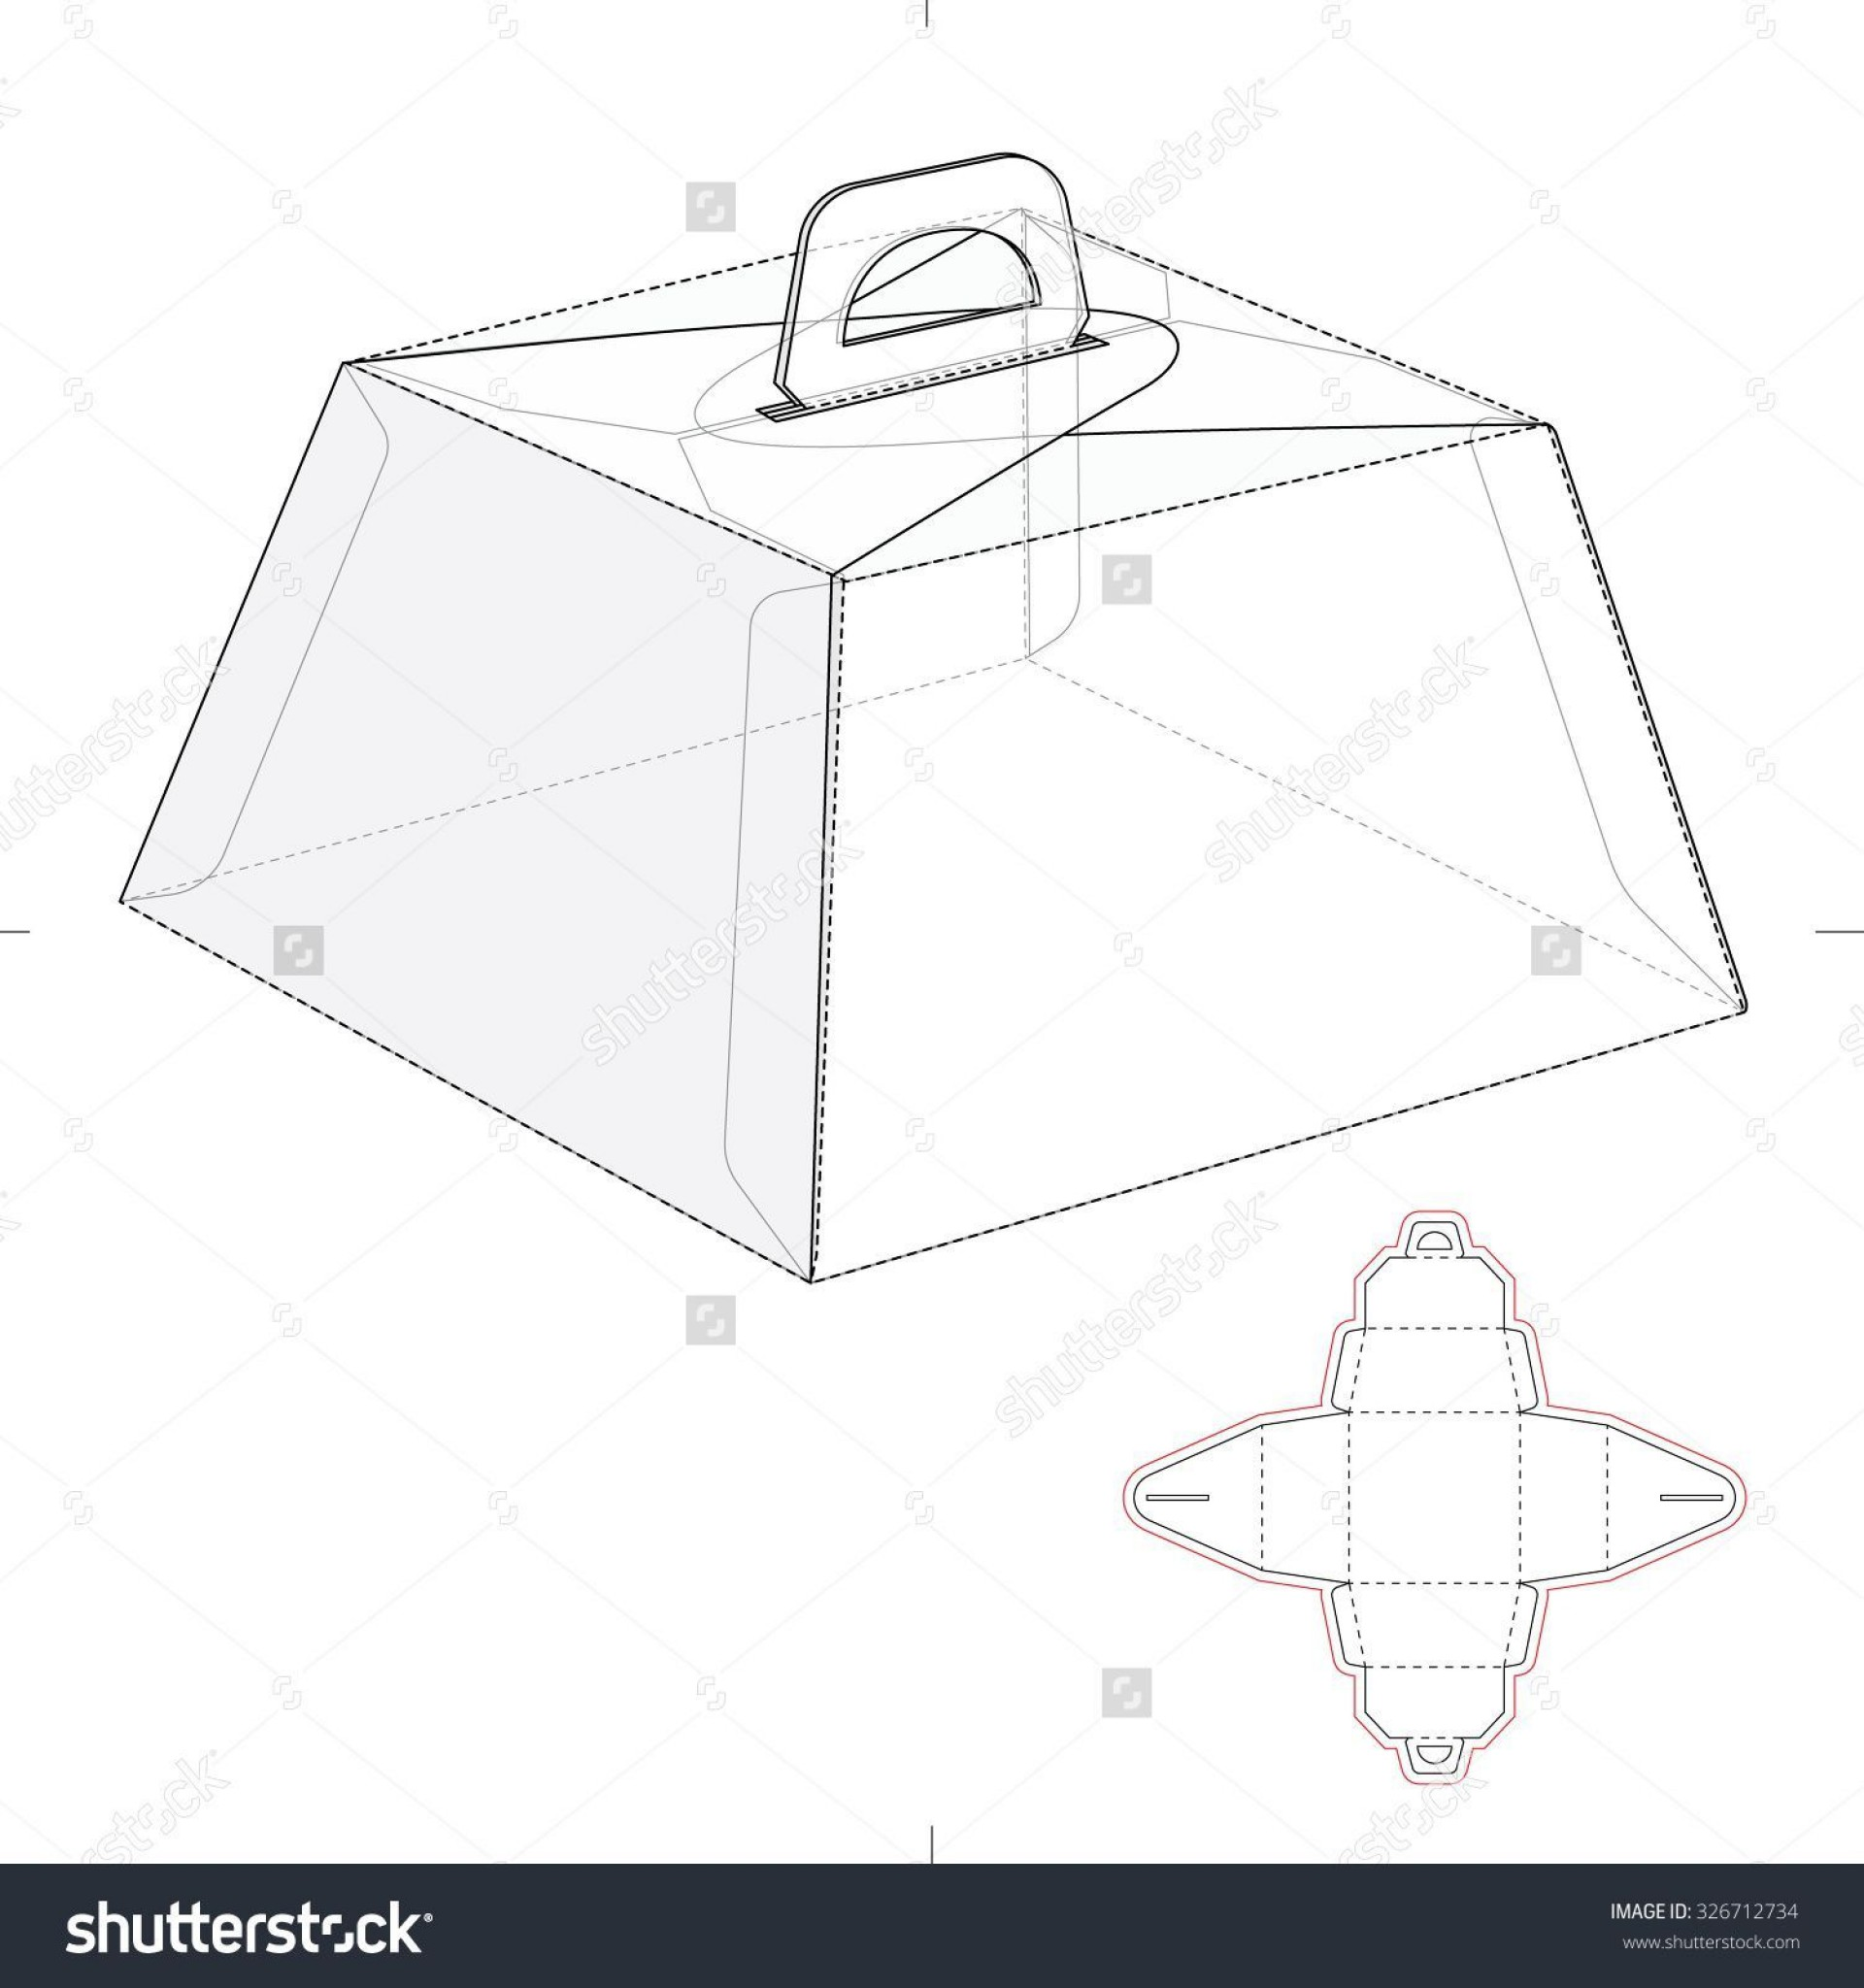 003 Unusual Box Design Template Free Inspiration  Text Download Packaging1920